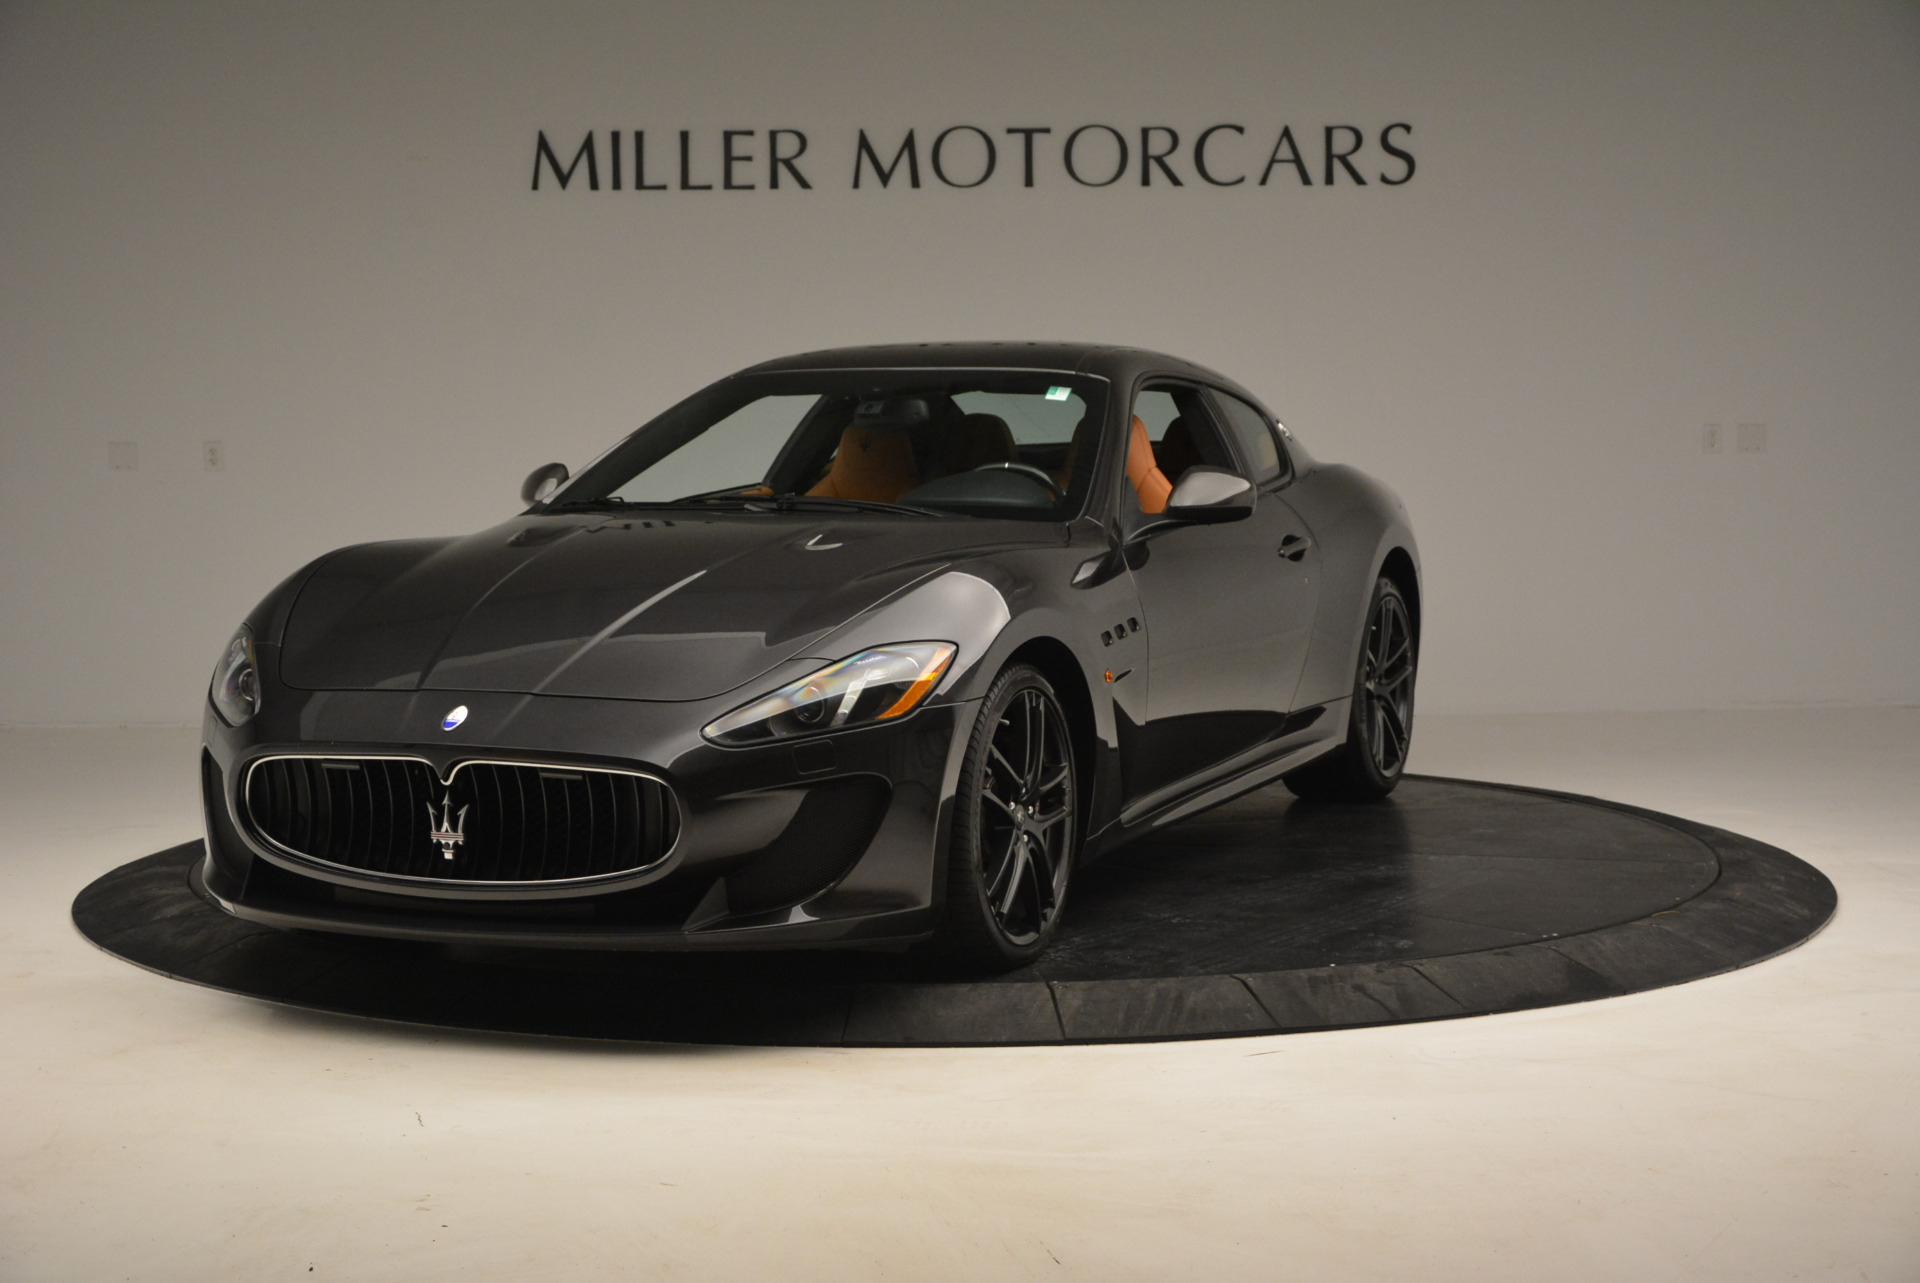 Used 2013 Maserati GranTurismo MC for sale Sold at Alfa Romeo of Greenwich in Greenwich CT 06830 1